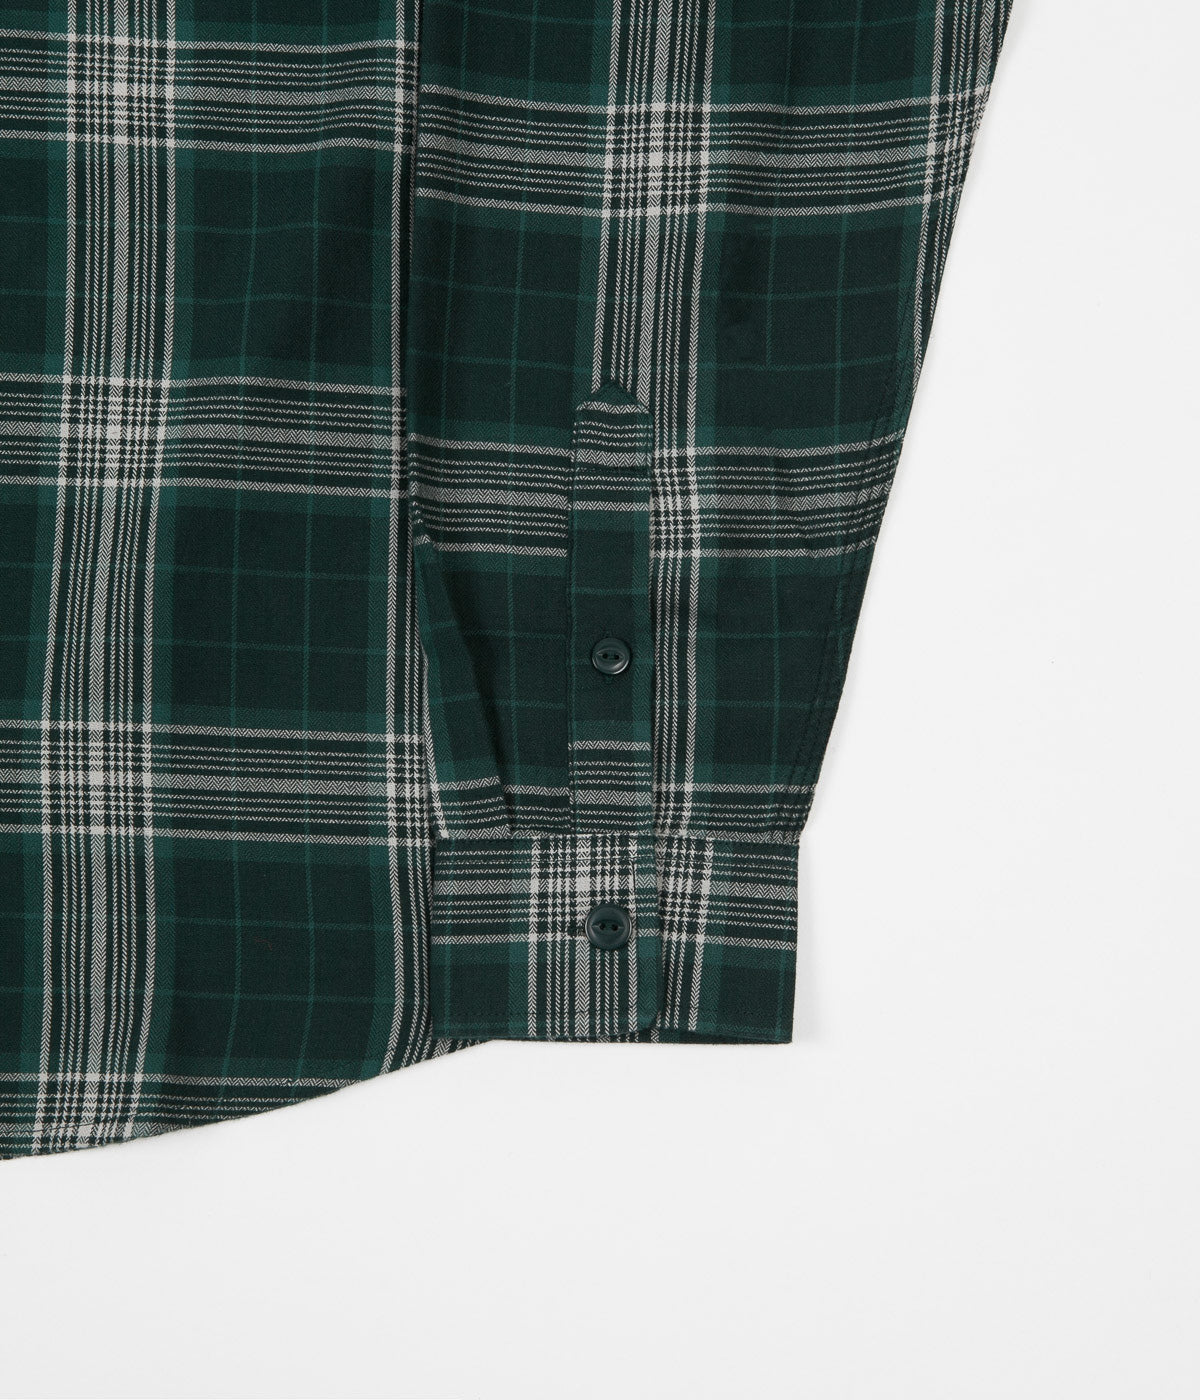 Carhartt Portland Long Sleeve Shirt - Portland Check / Parsley